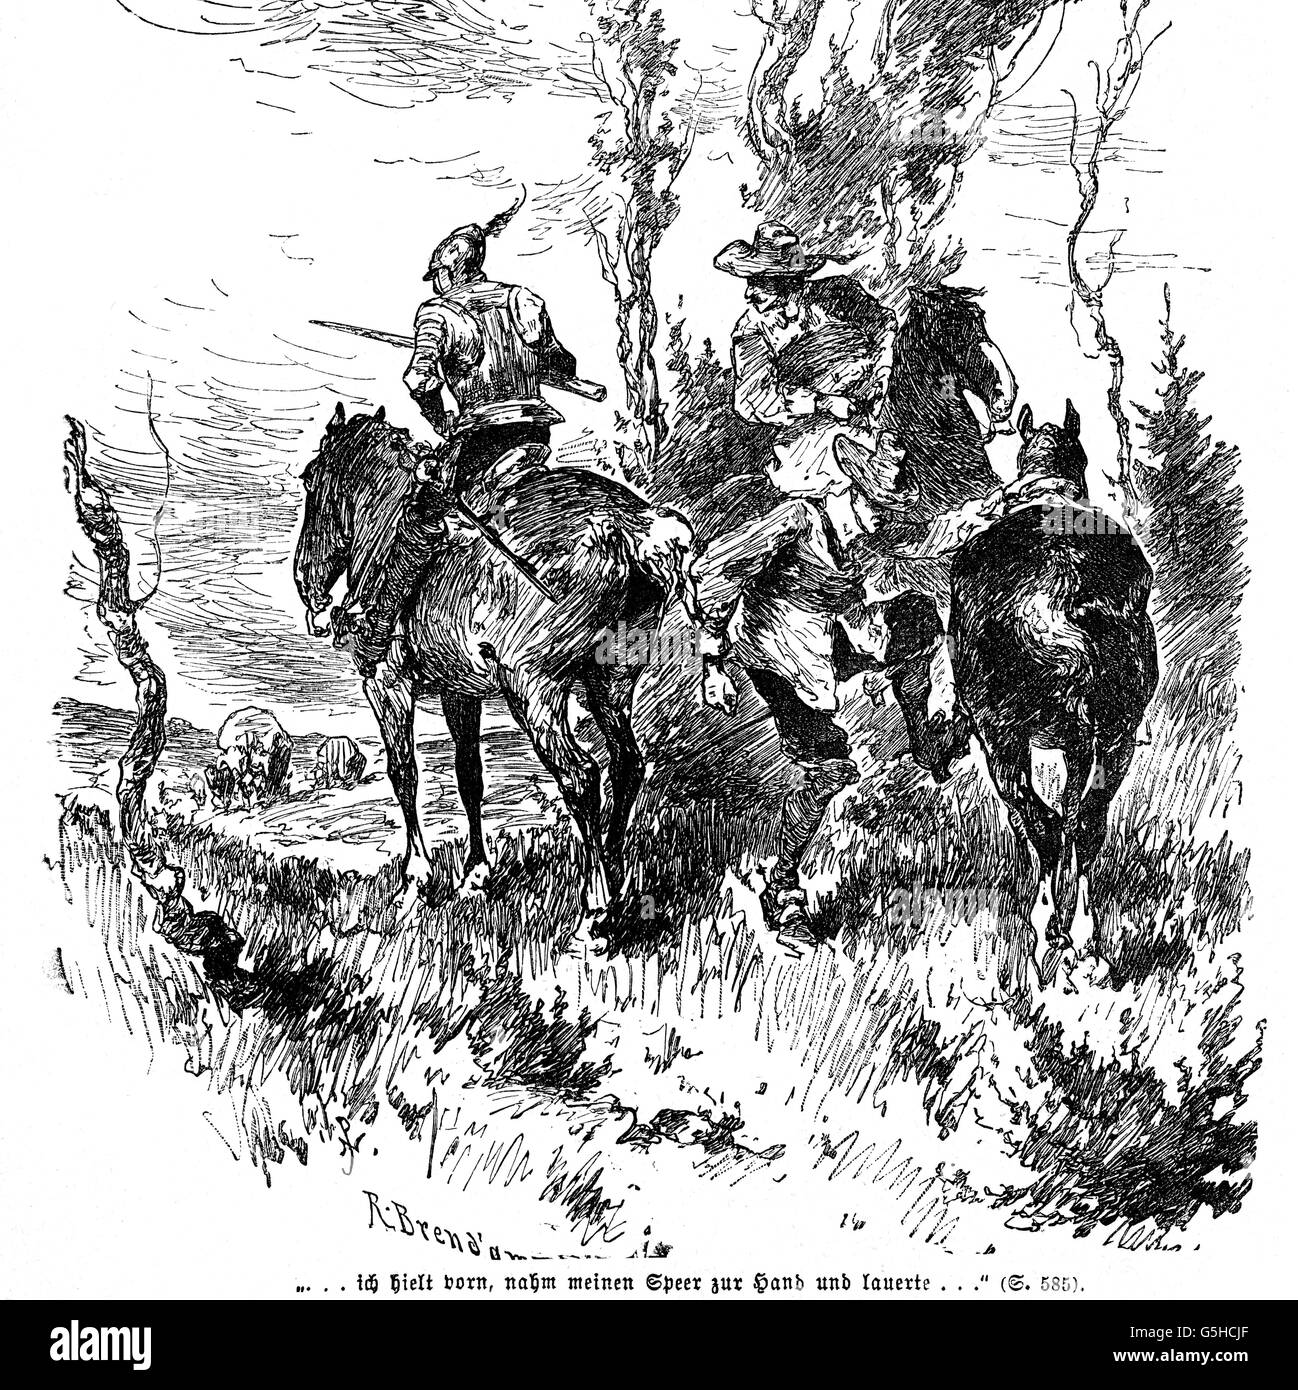 military, cavalry, soldiers setting up an ambush, 17th century, wood engraving, 19th century, horse, horses, riding, - Stock Image